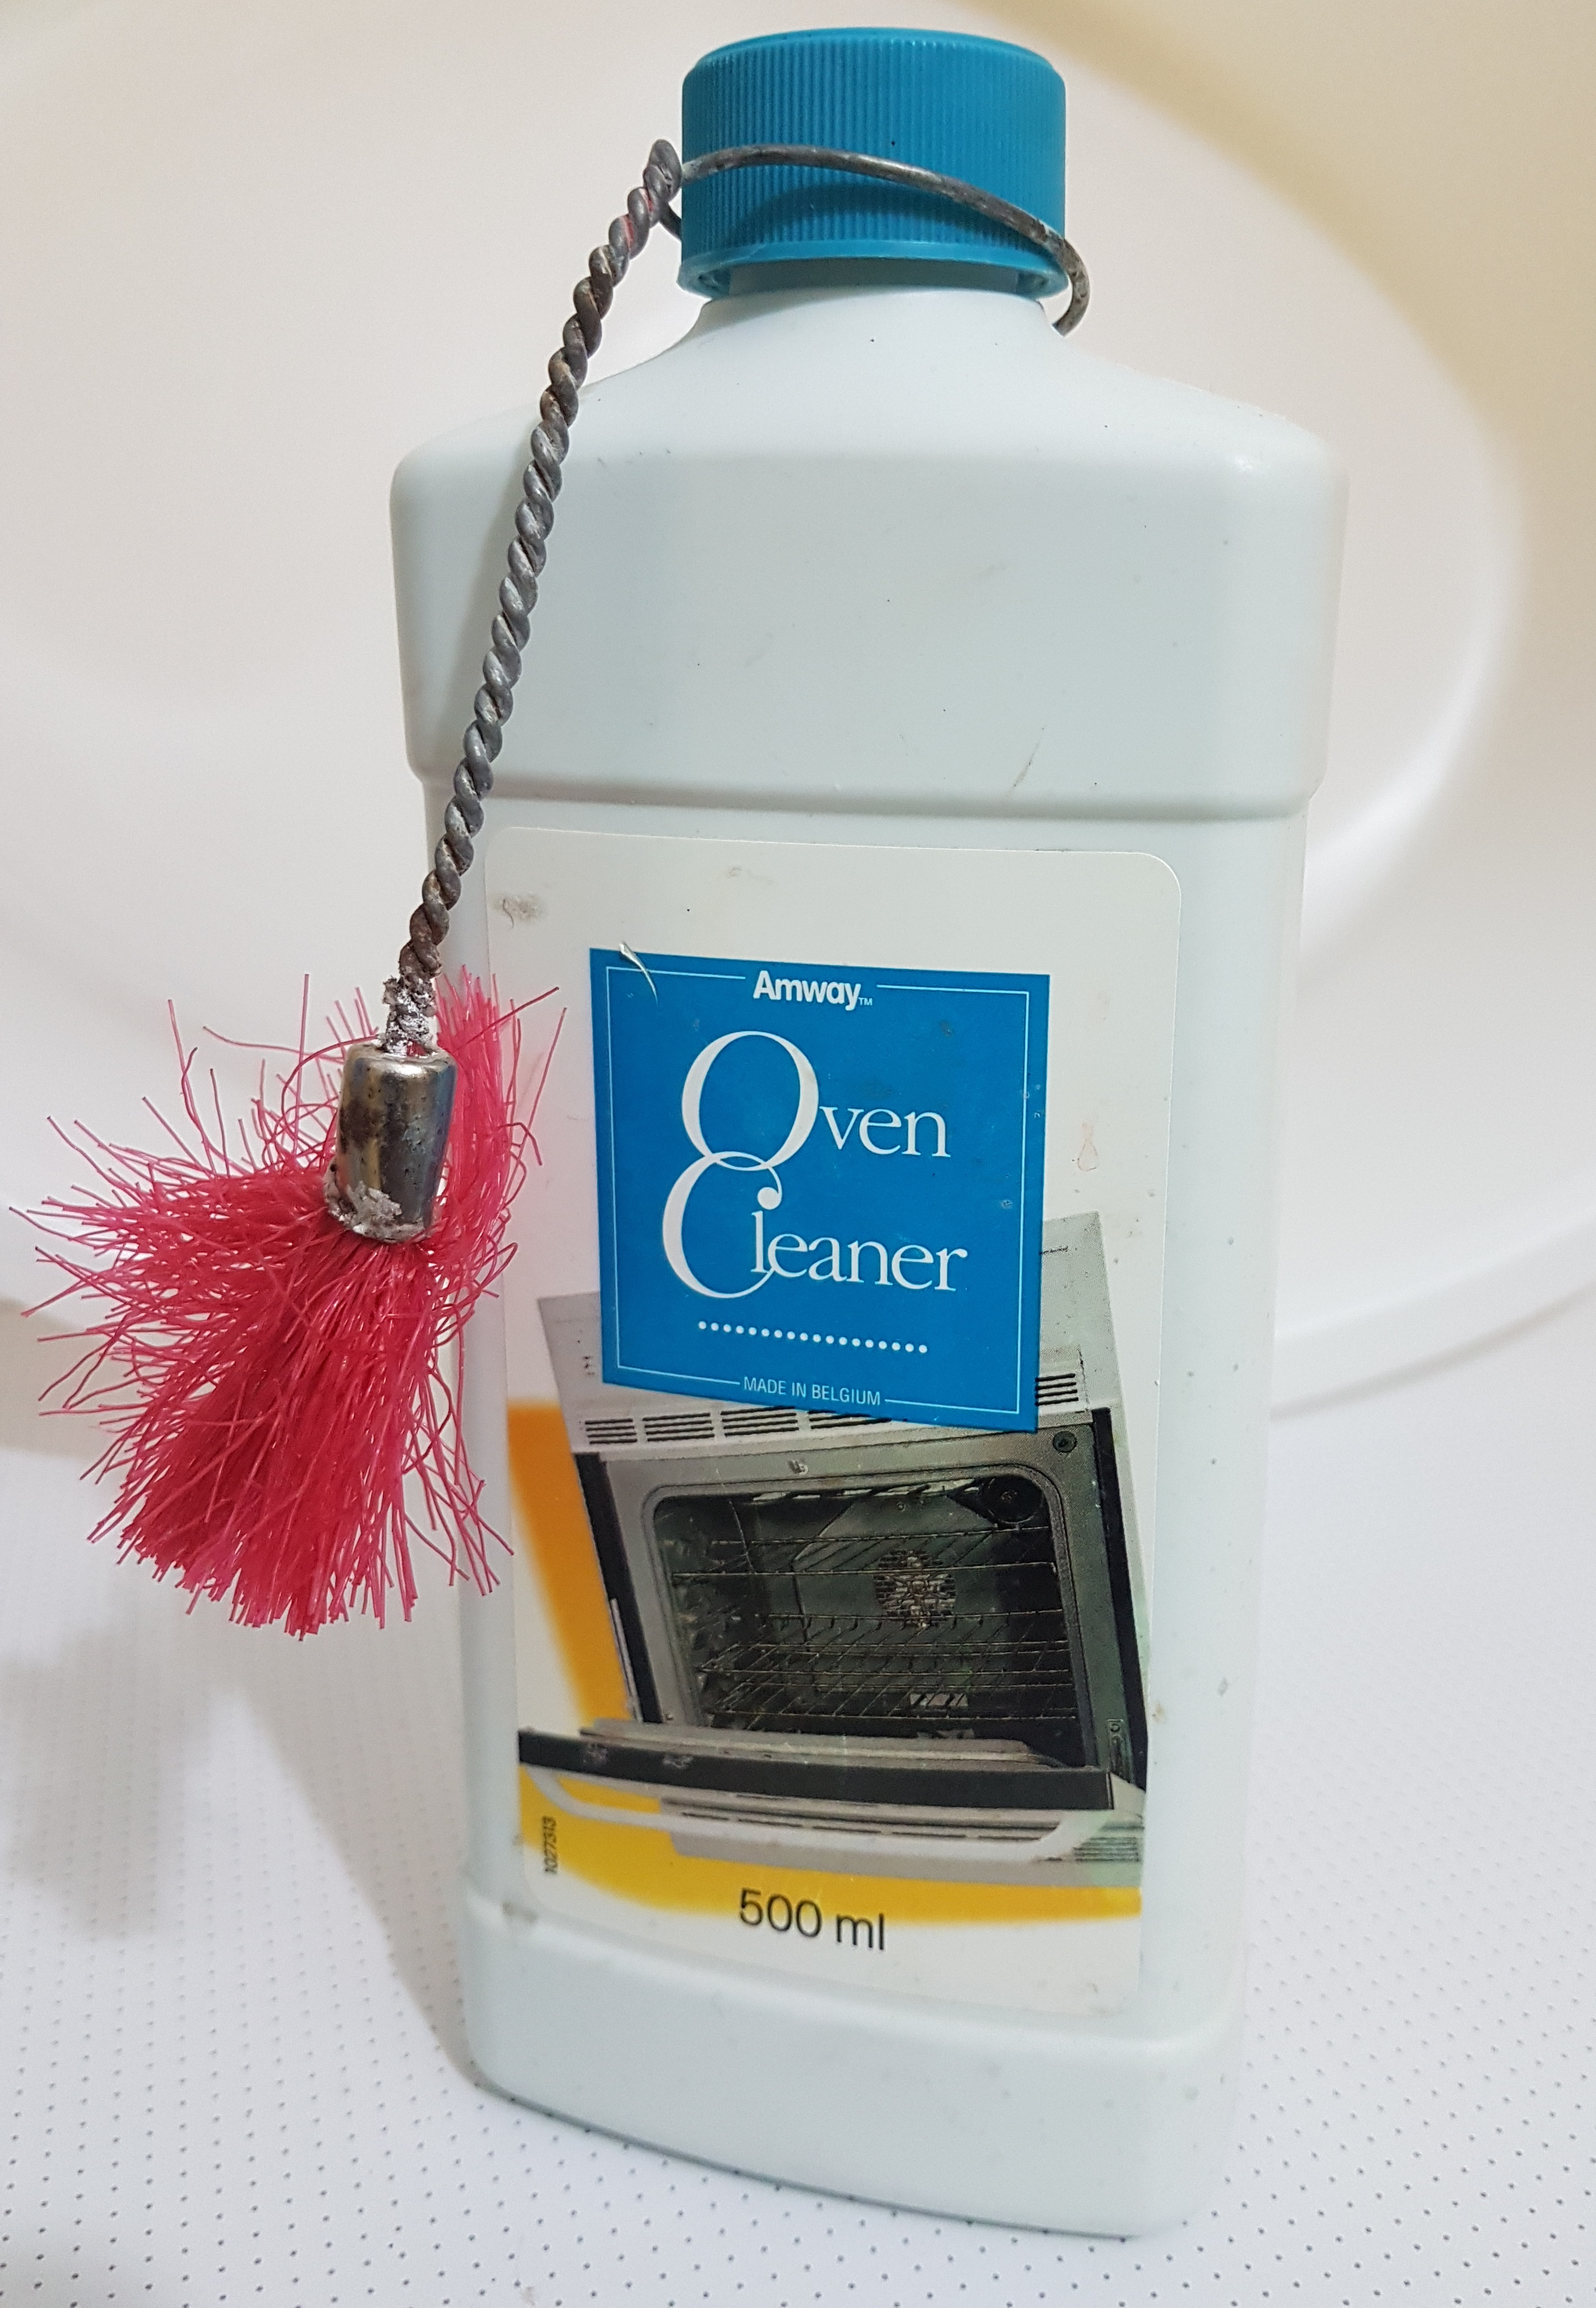 Amway Oven Cleaner